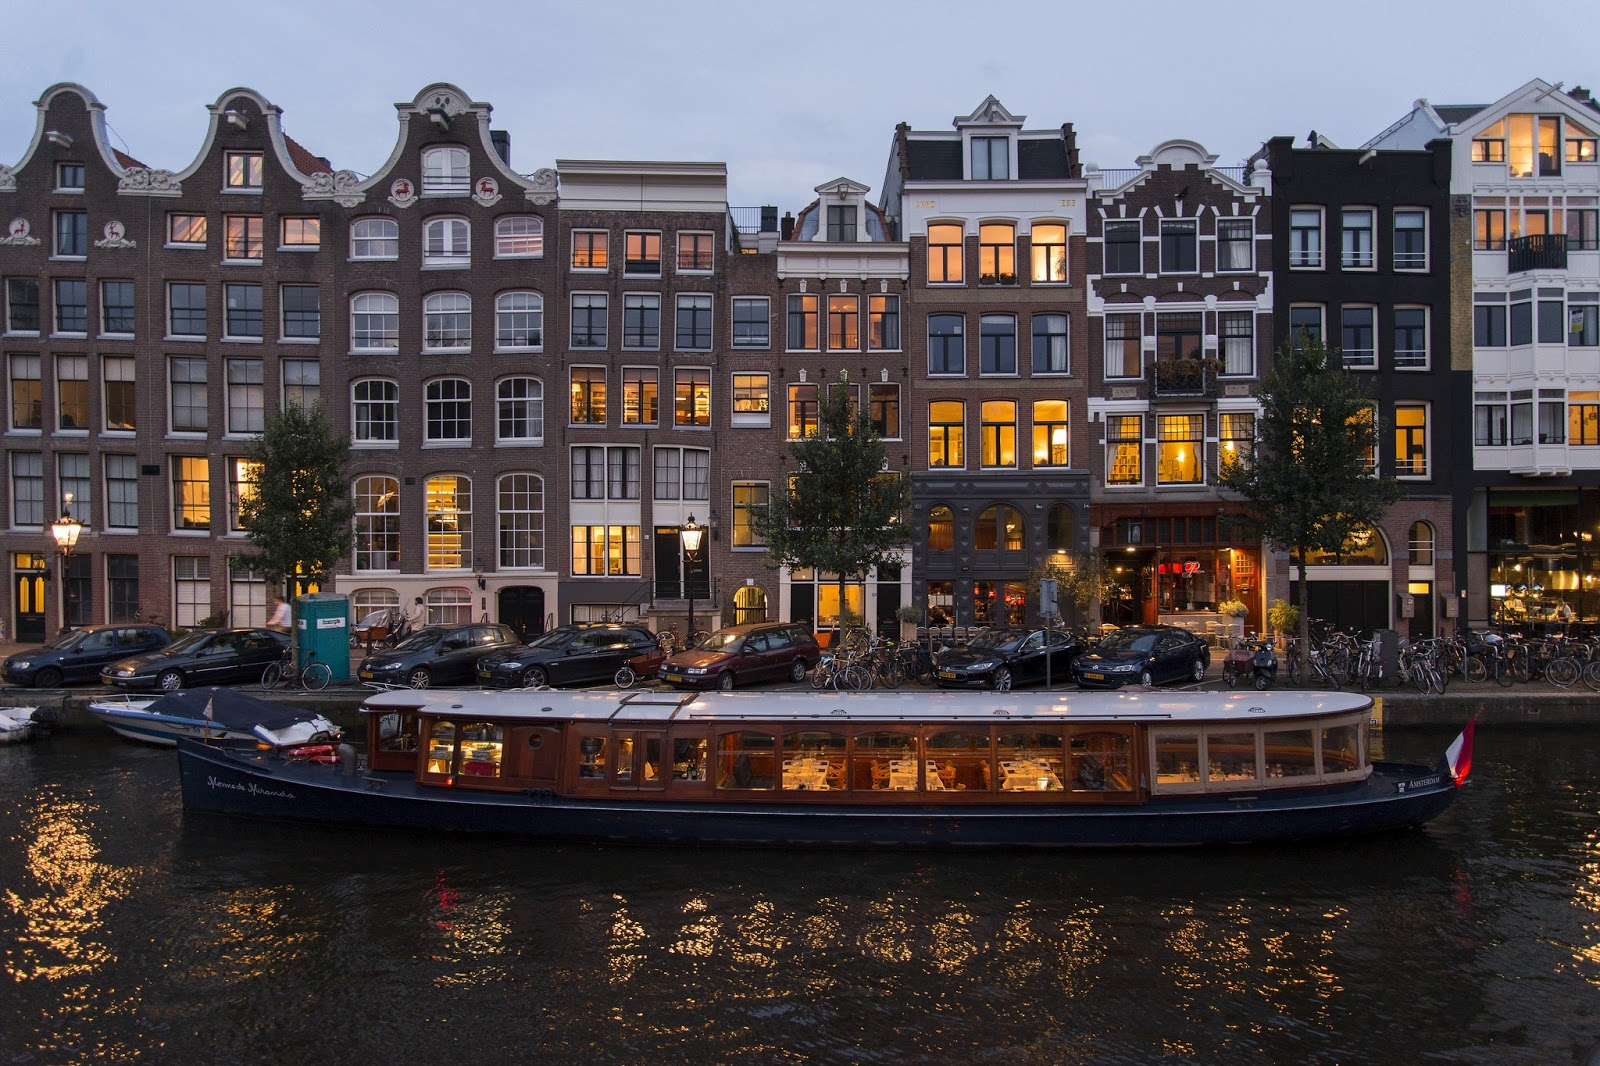 Amsterdam Known as the Venice of North